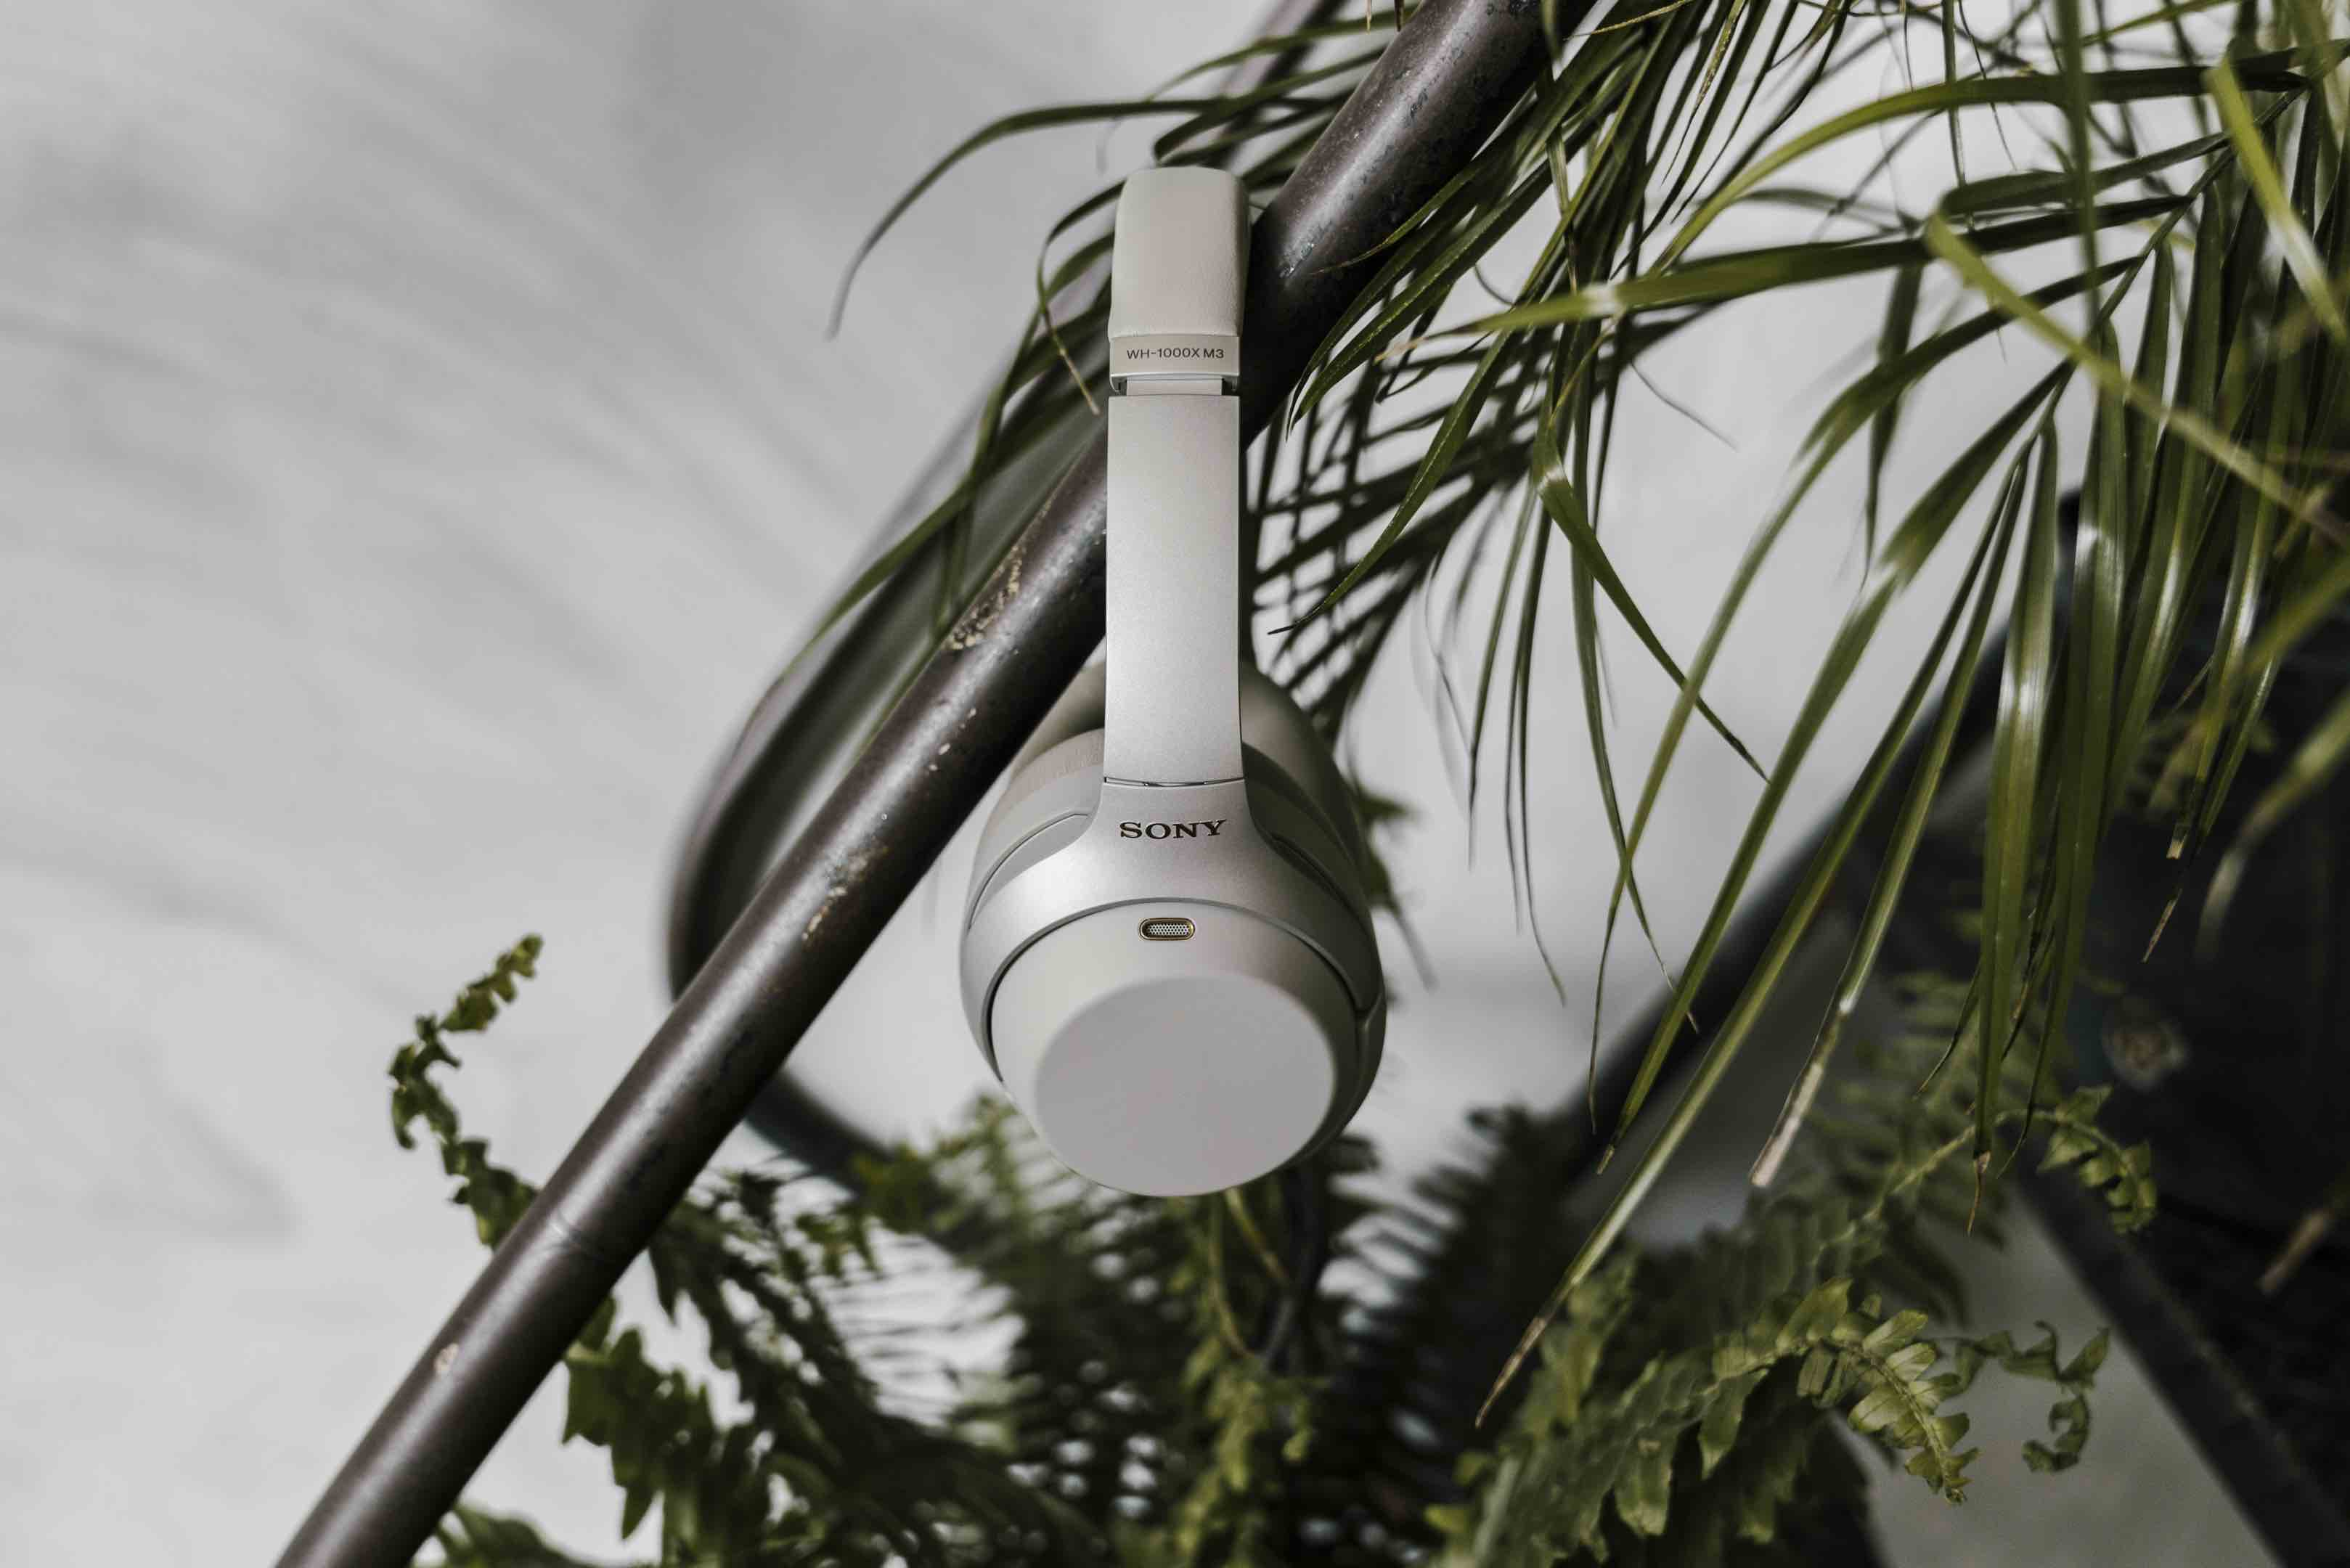 Sony WH-1000XM3 Wireless Noise-Canceling Headphones l AOV Gear Highlights